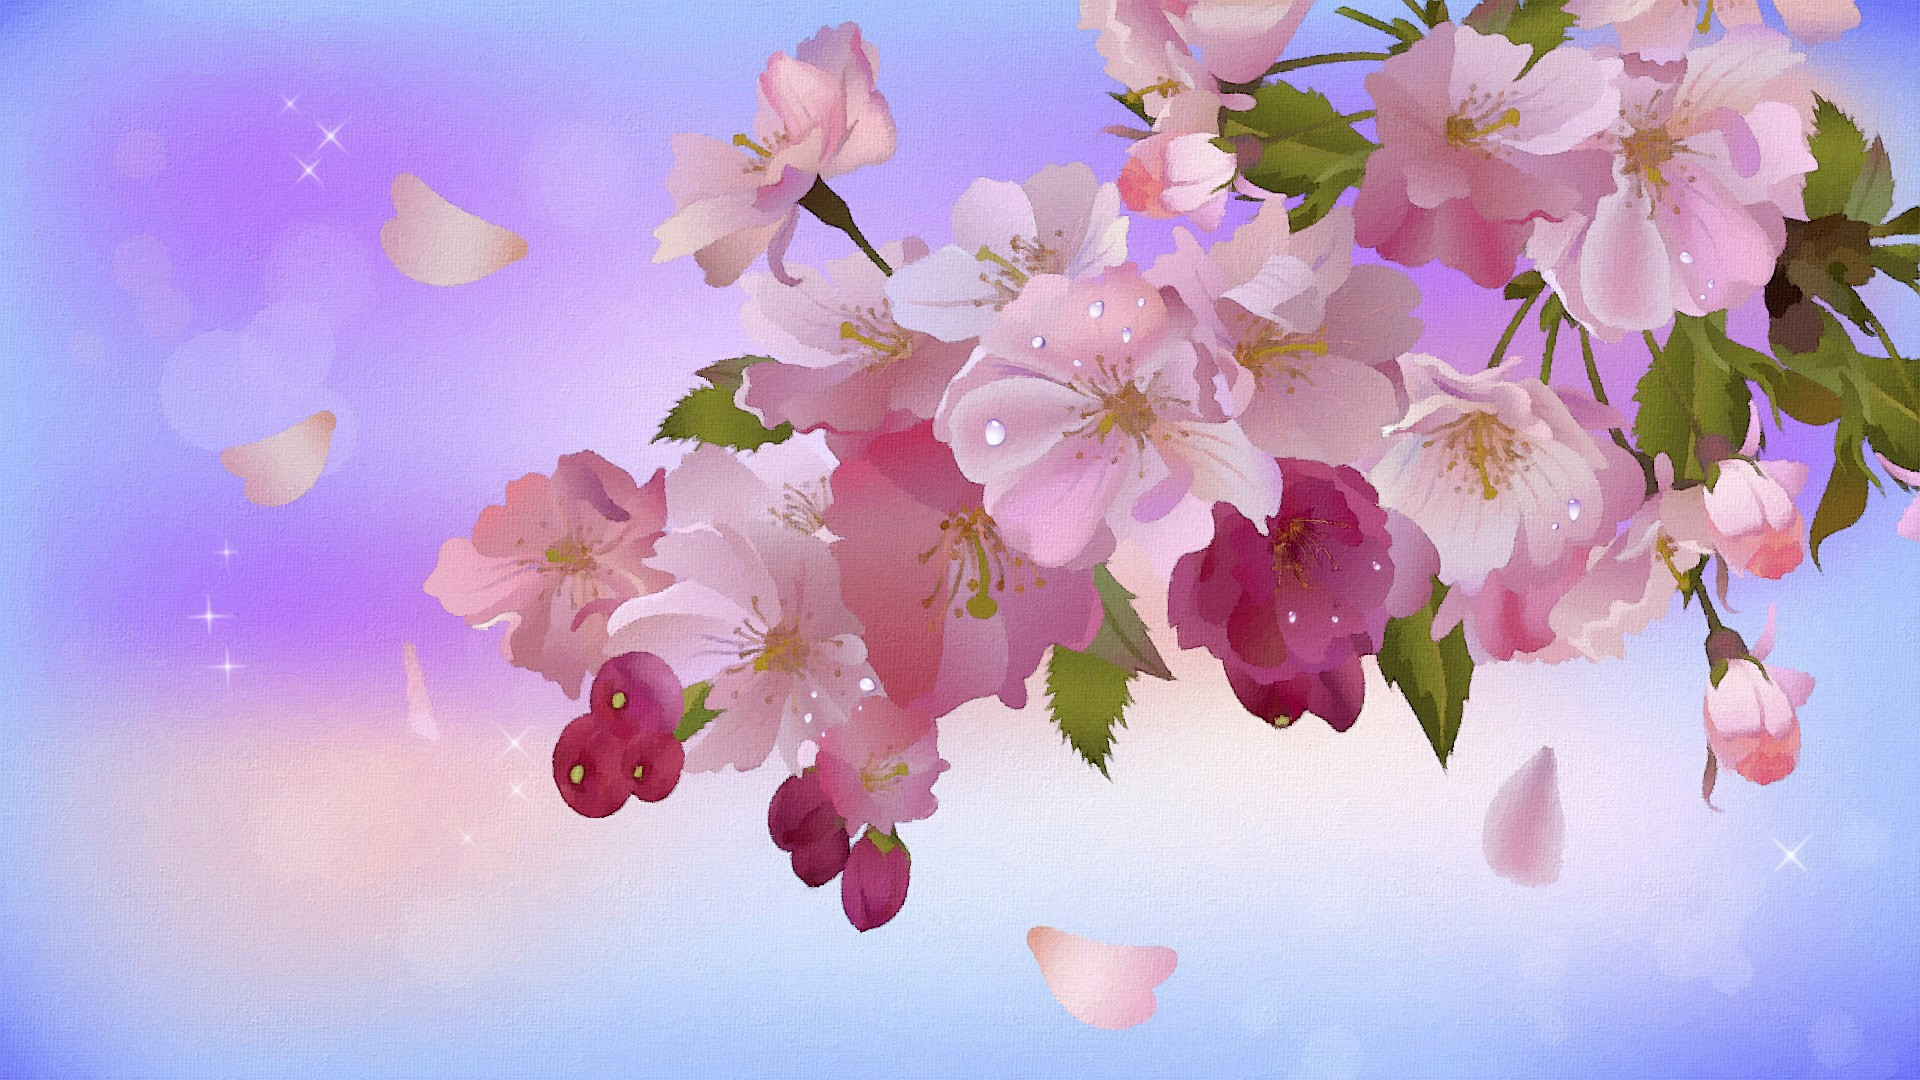 rate select rating give apple blossom 1 5 give apple blossom 2 1920x1080